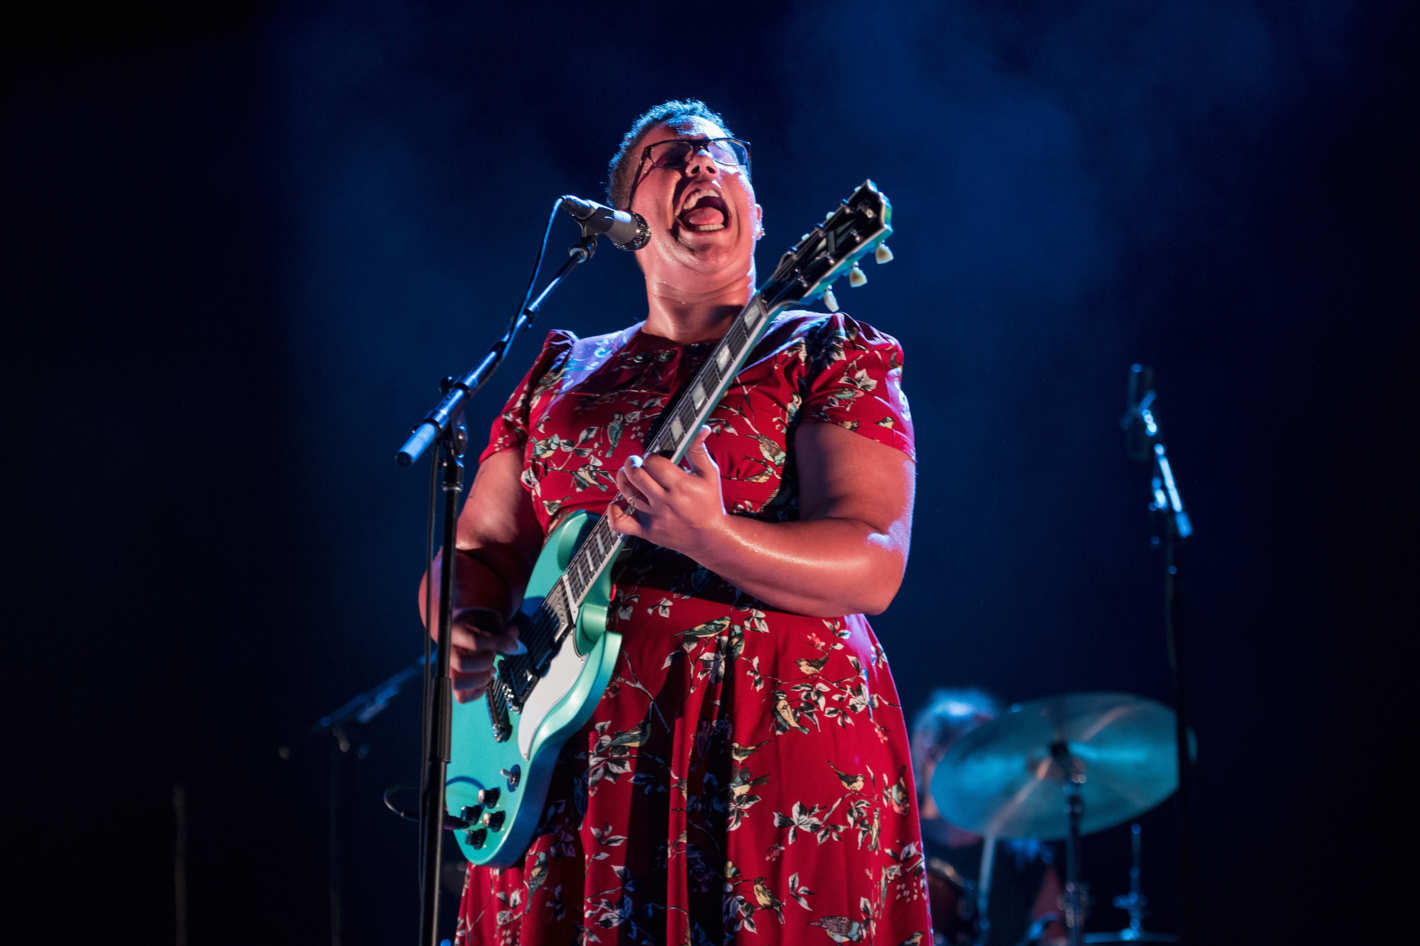 Alabama Shakes' Brittany Howard Made a Sick Punk Album With Her Thunderbitch Side Project